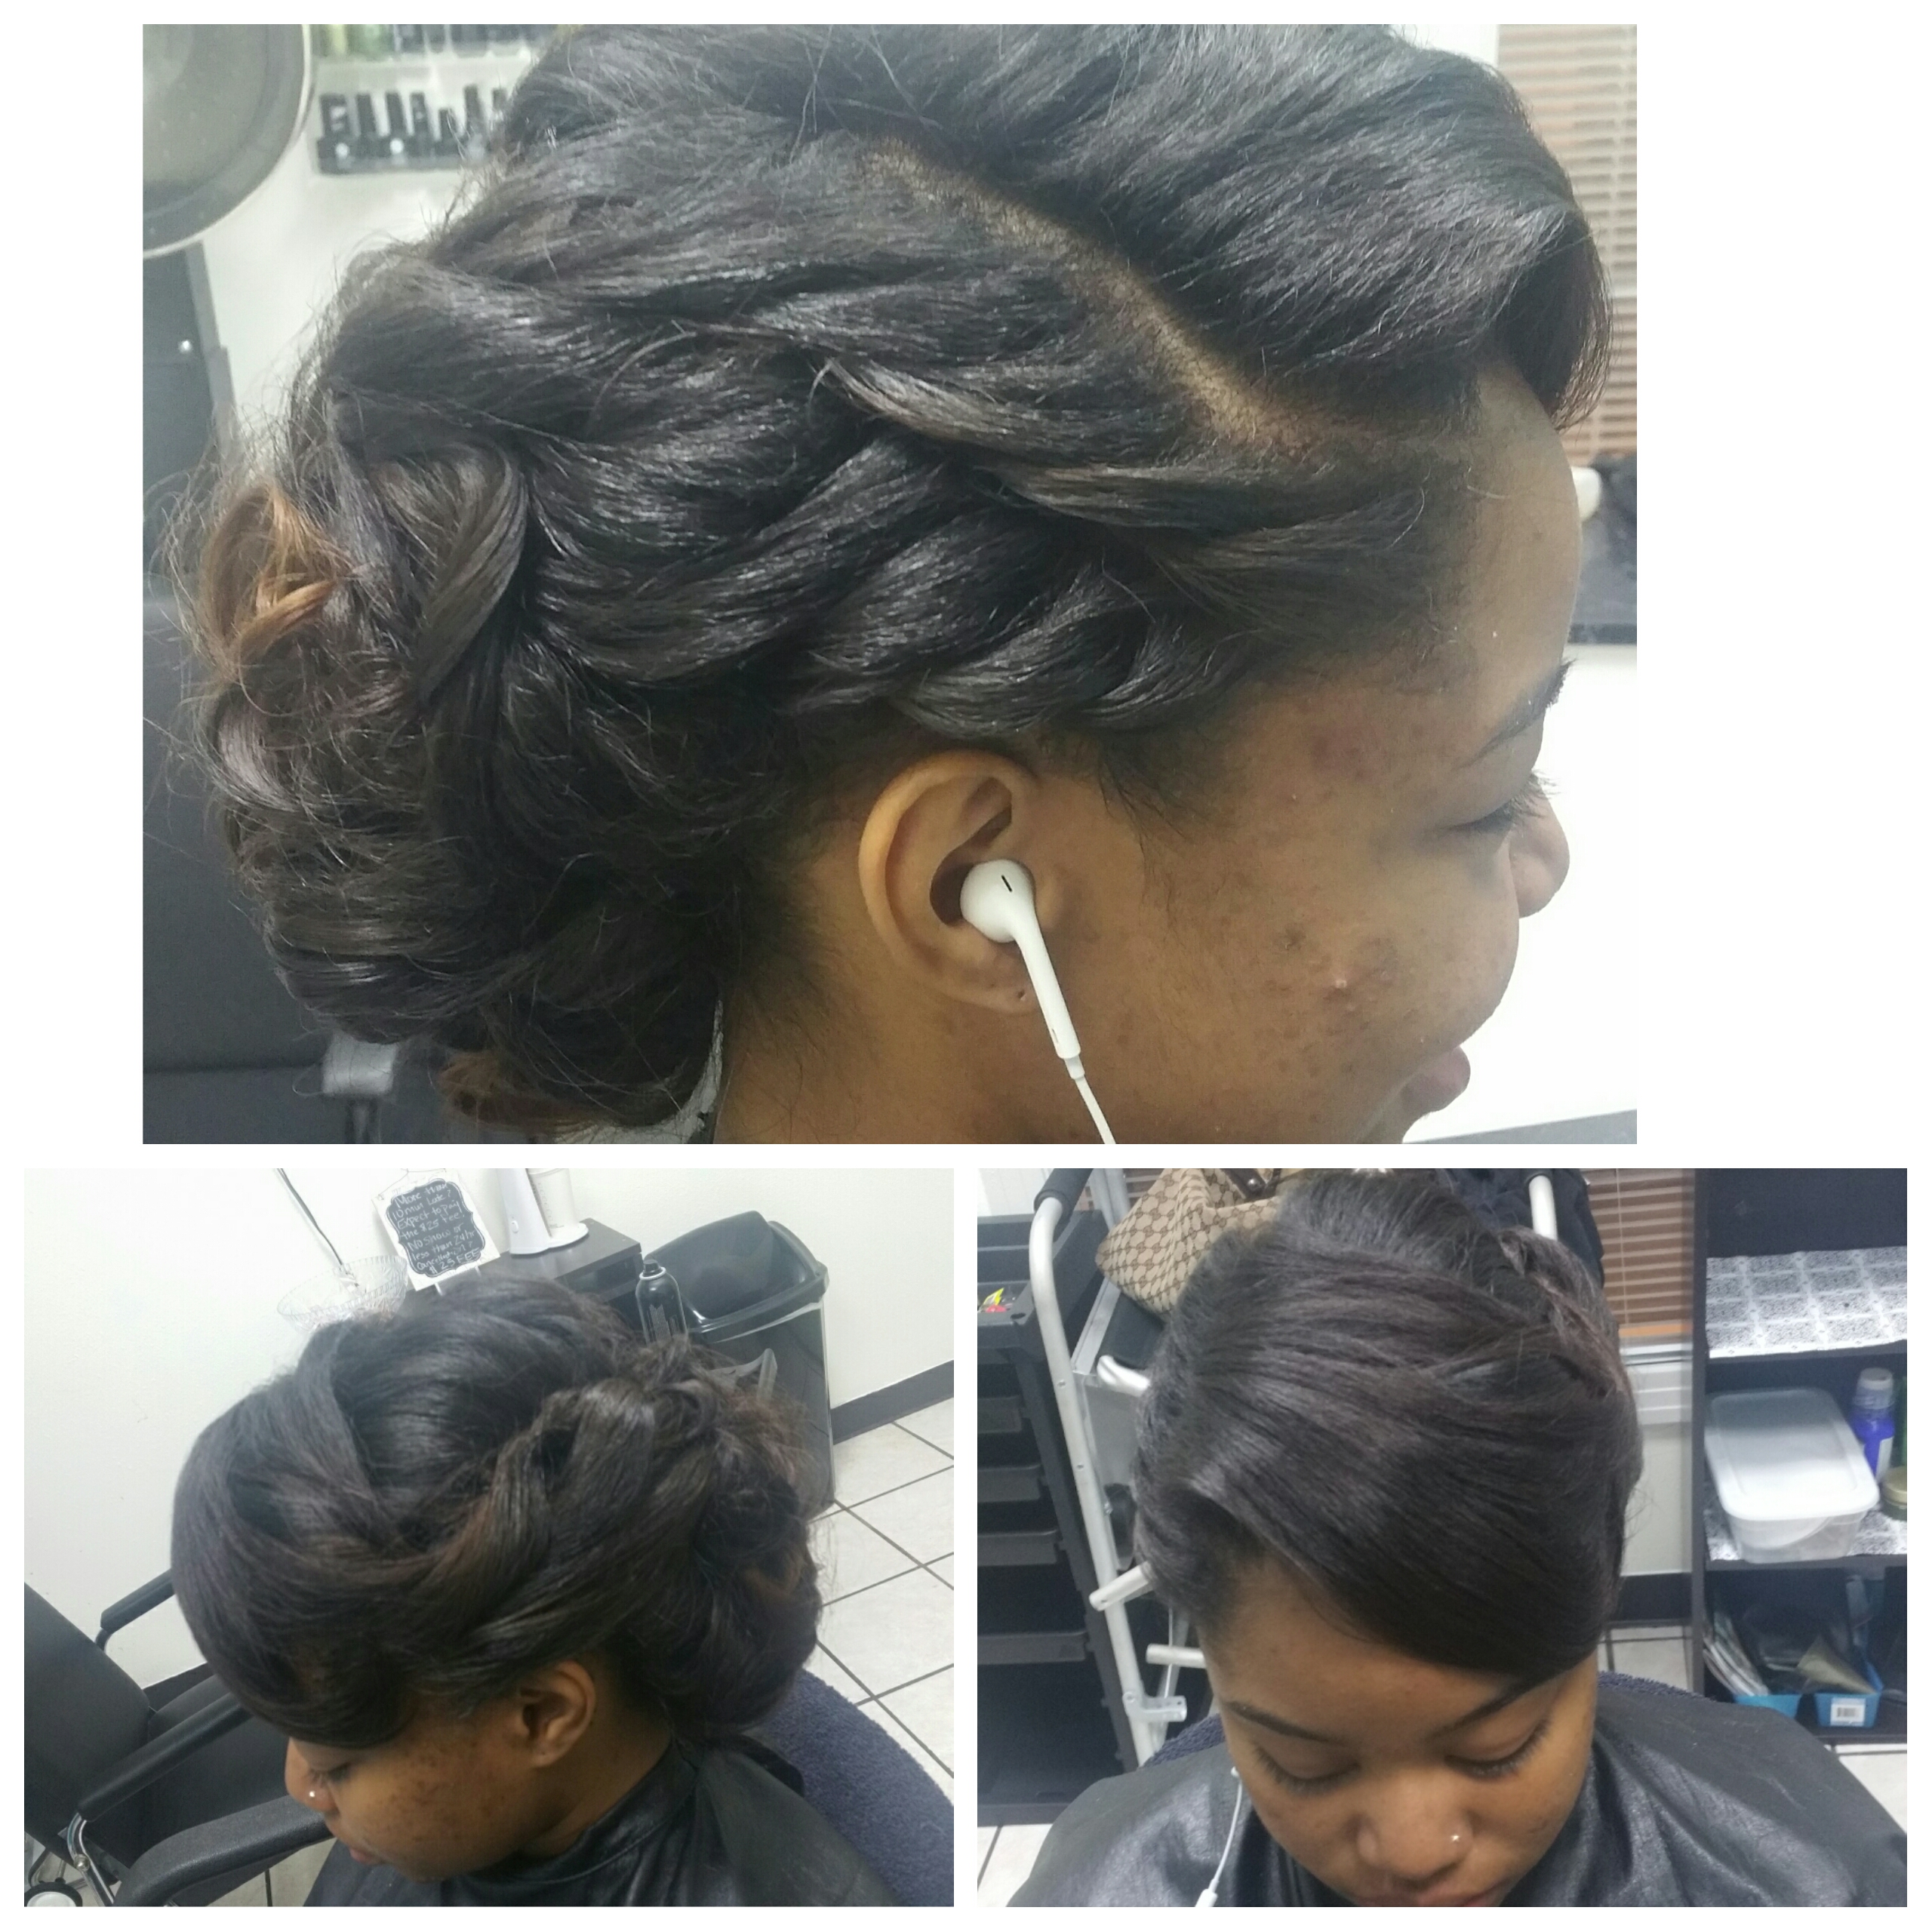 Braidless Sew-In w/ Updo